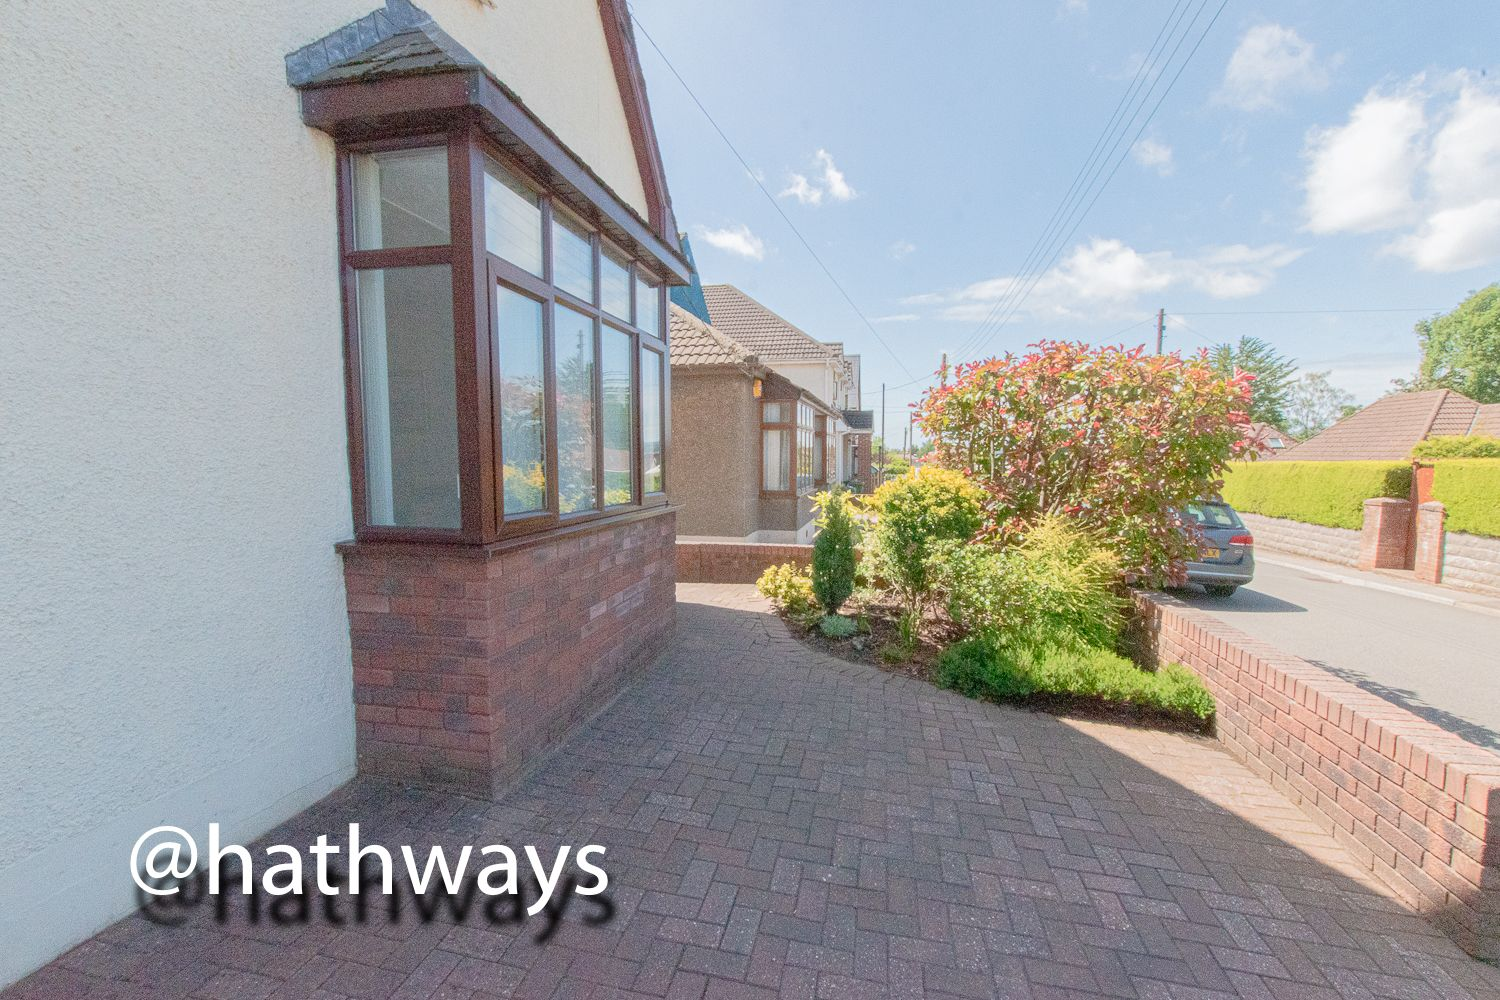 4 bed house for sale in Ashford Close South  - Property Image 57